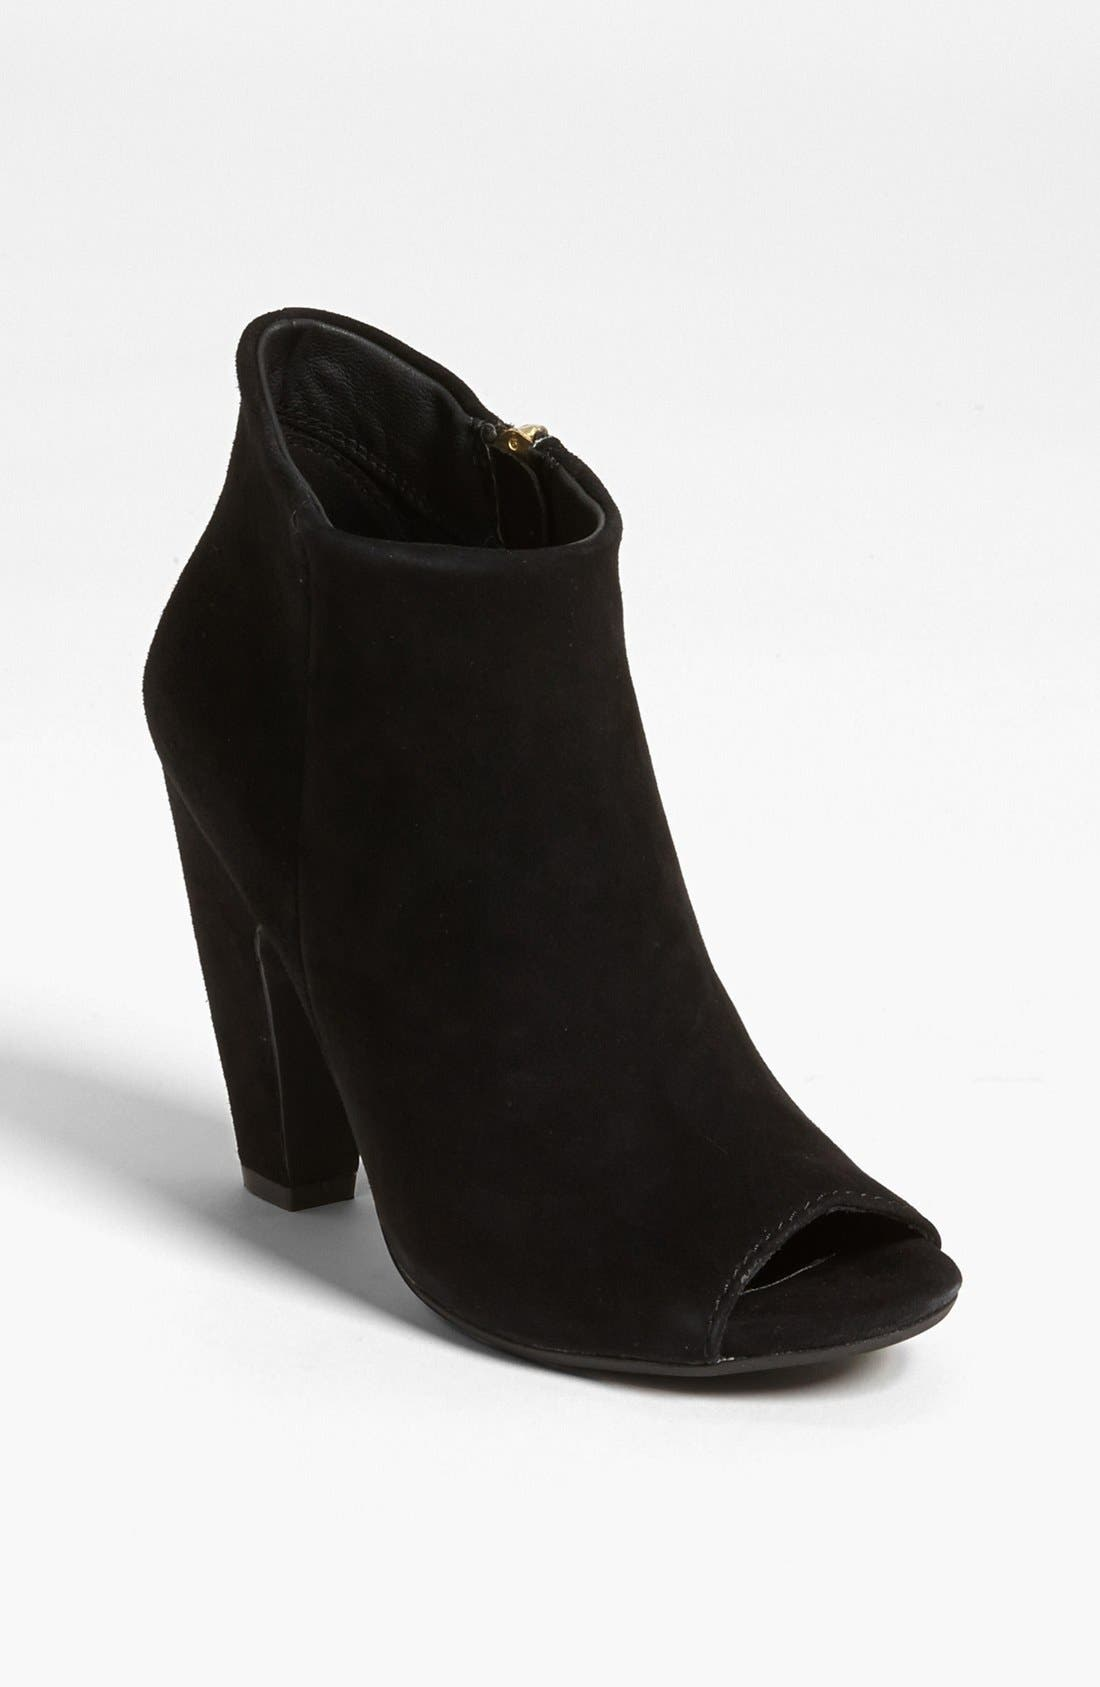 Alternate Image 1 Selected - Steve Madden 'Paulina' Boot